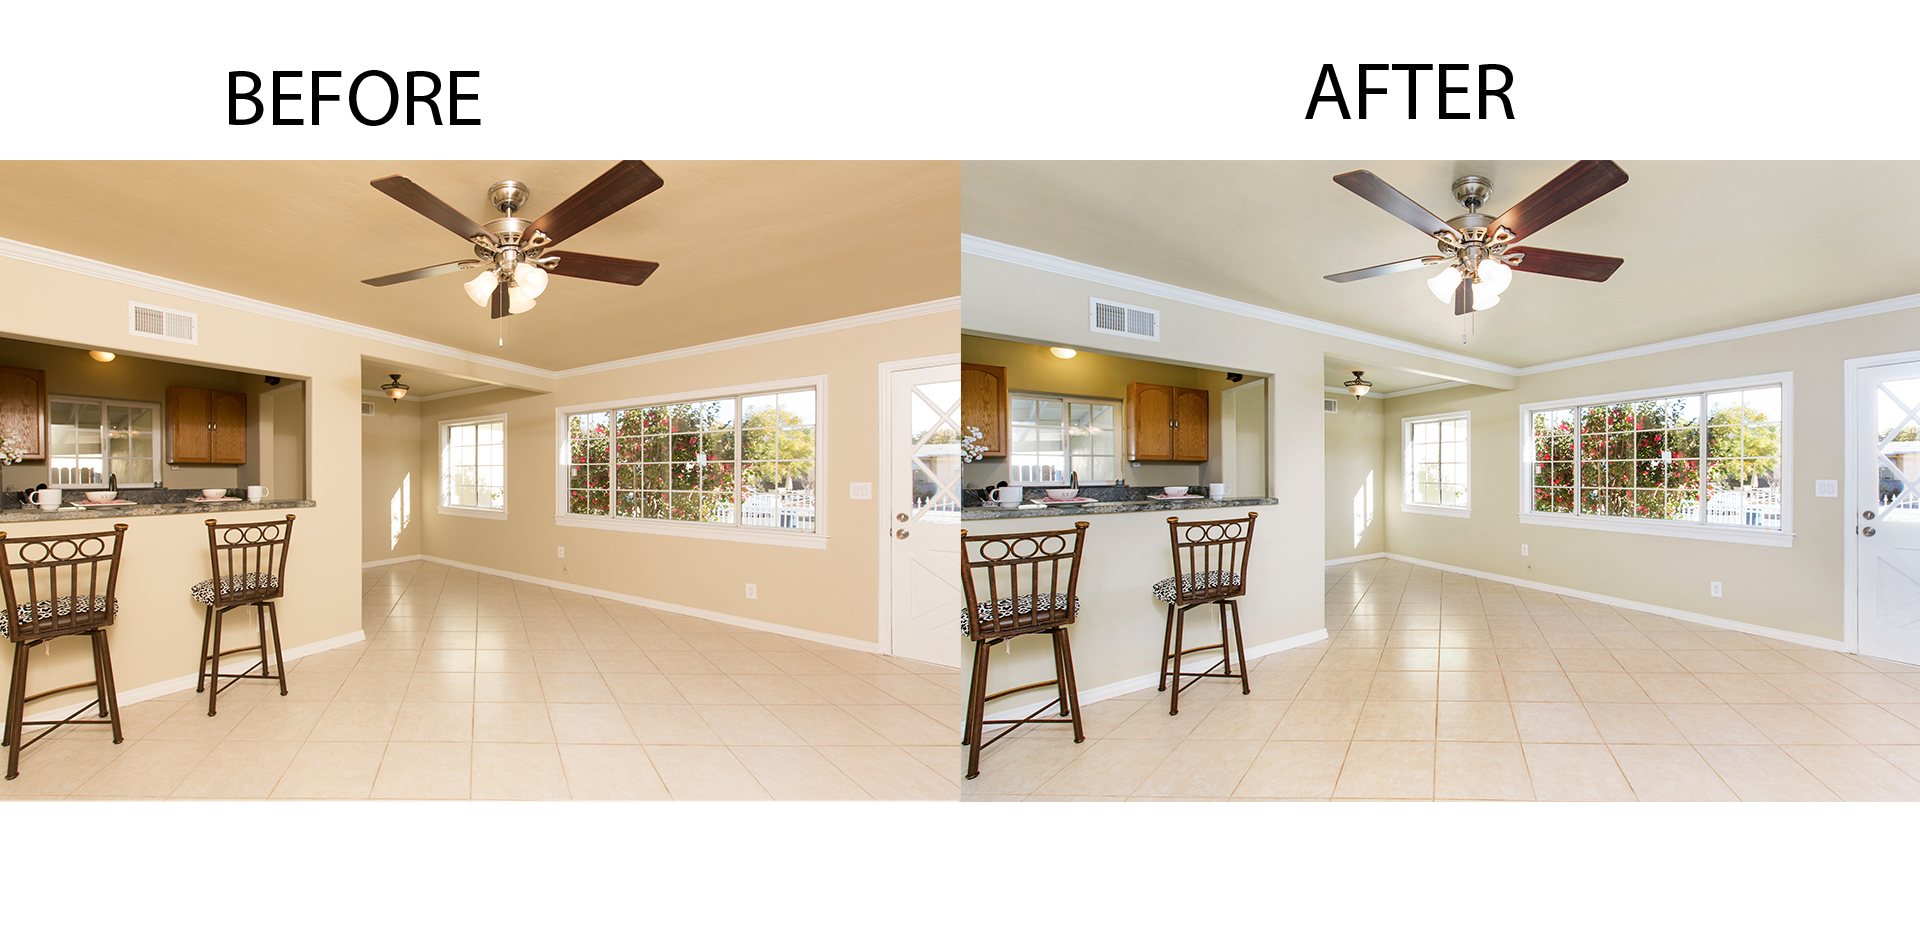 Post Processing of Real Estate Images